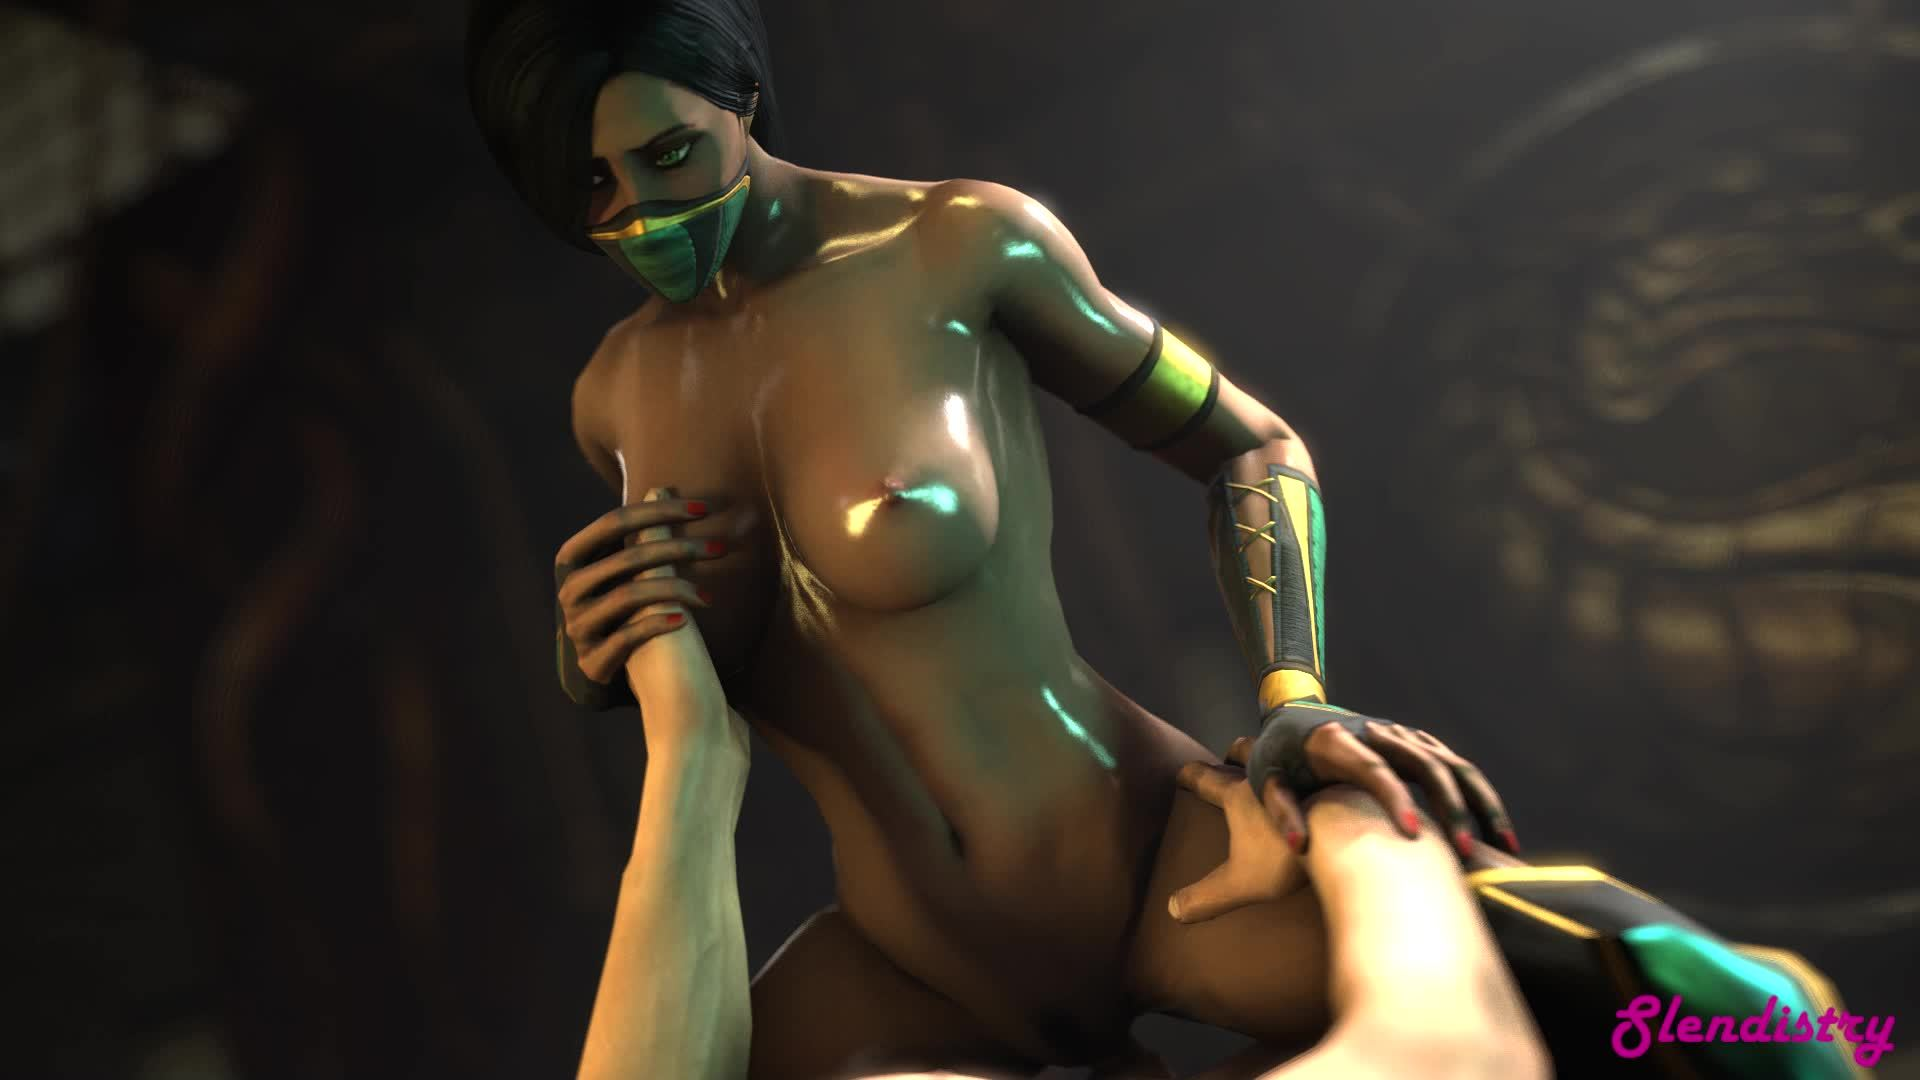 Mortal kombat sexy girls porn sexy photo